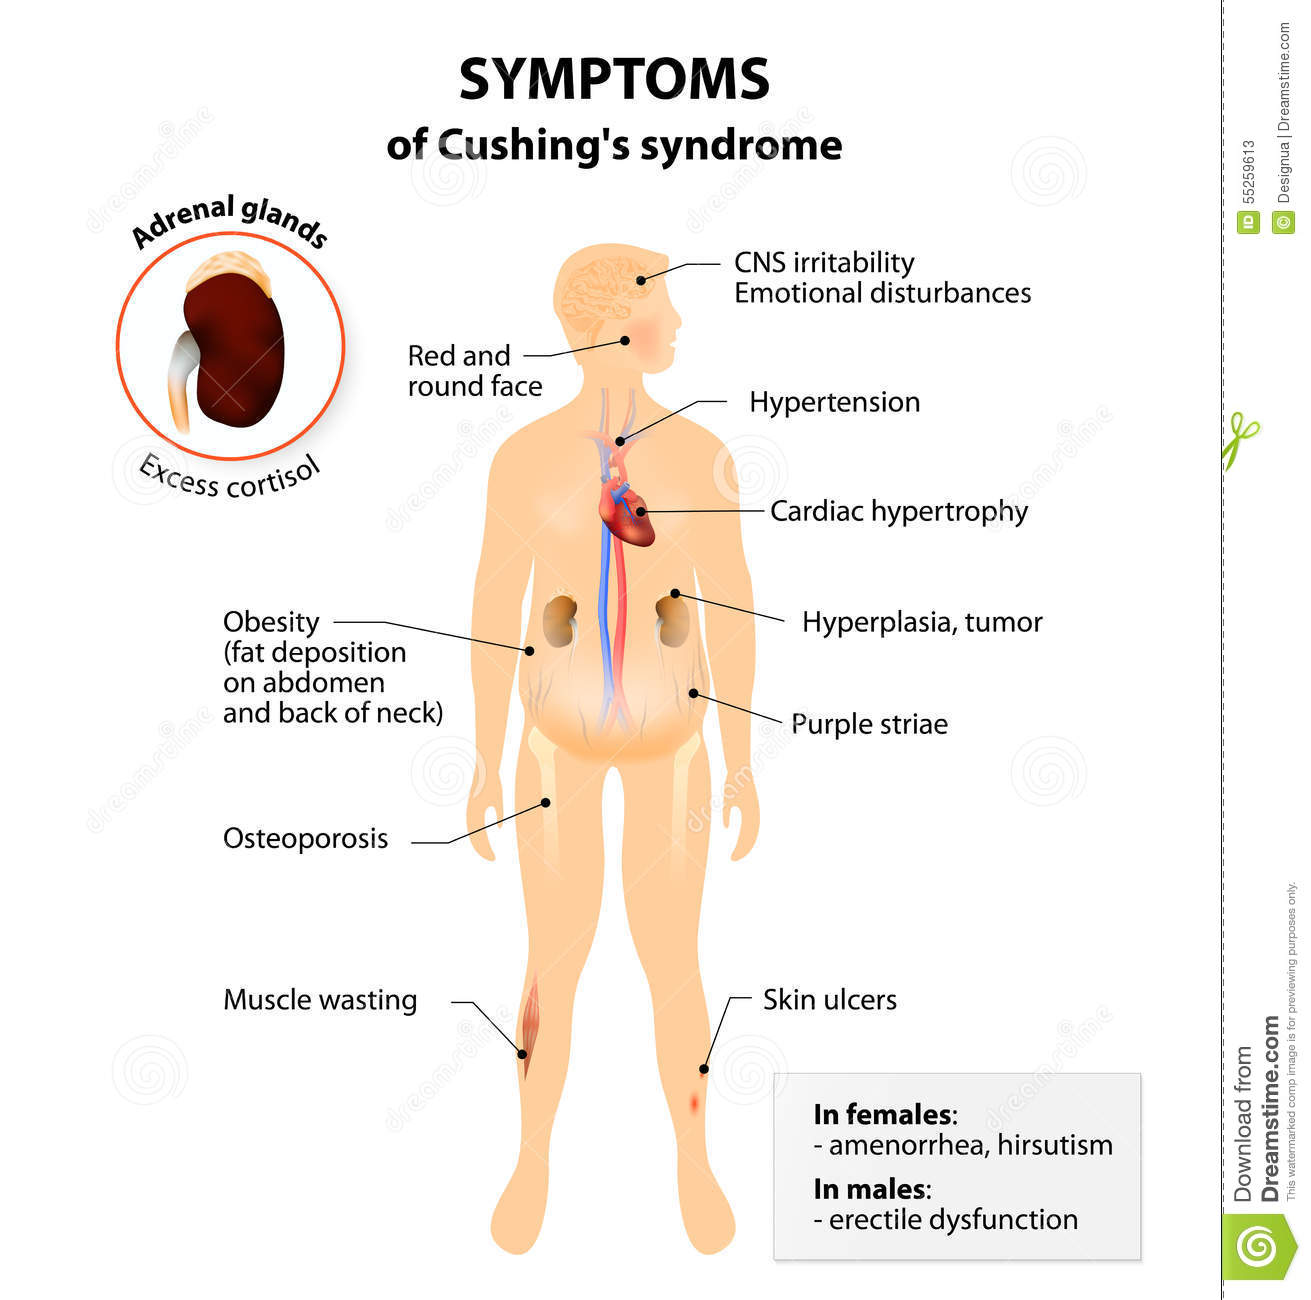 steroid dependent nephrotic syndrome rituximab